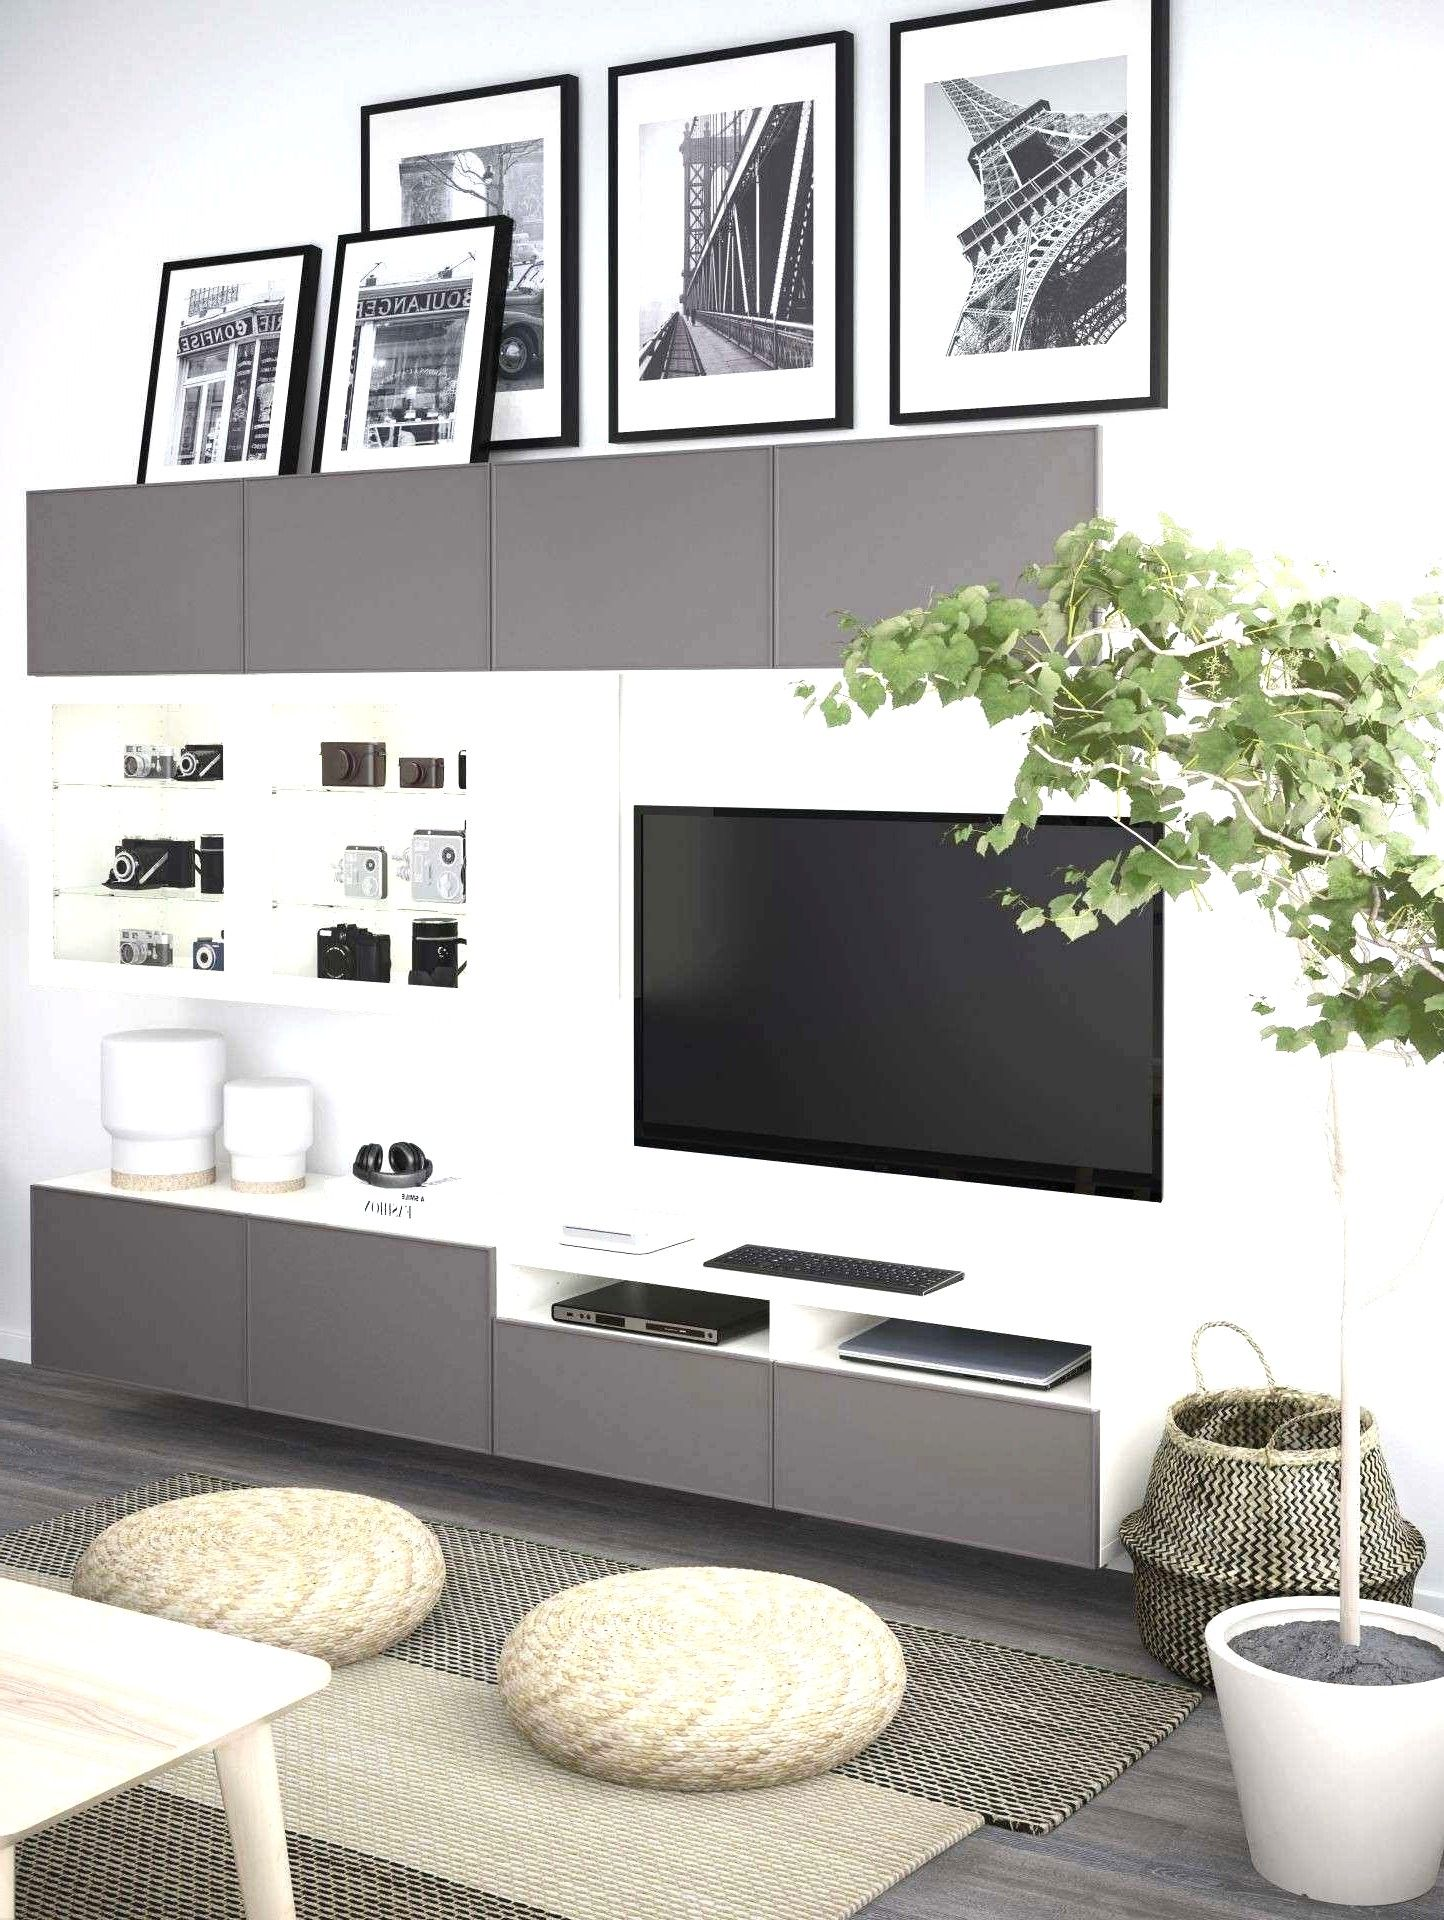 Pin By Jelena Jokovic On Ikea Living Room In 2020 Ikea Living Room Living Room Decor Apartment Living Room Tv Stand